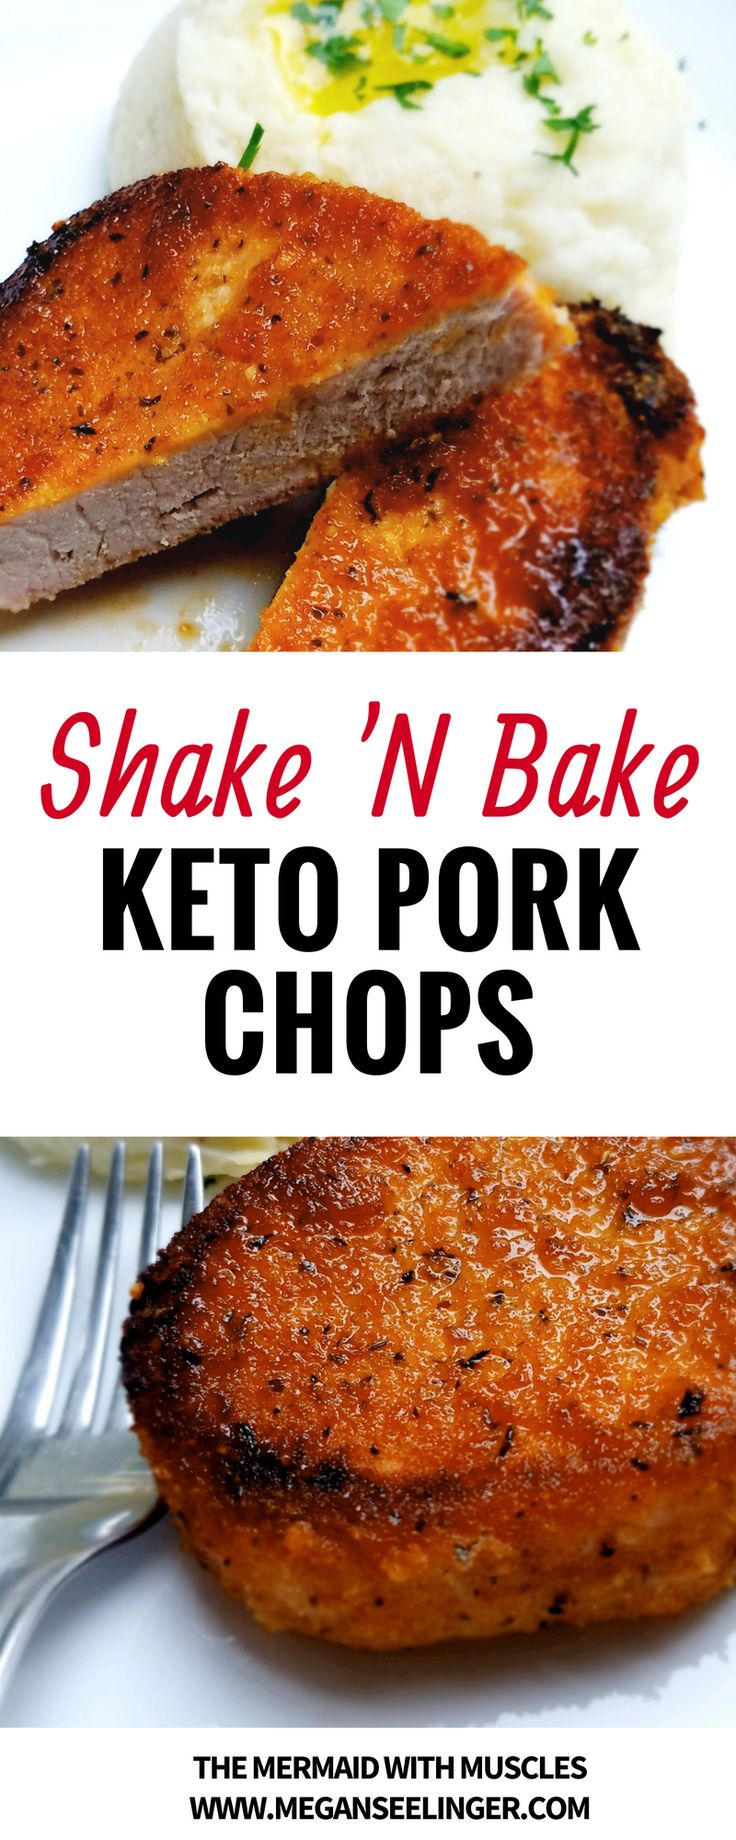 Keto Diet Plan: This easy shake'N bake keto pork chop recipe is a copycat from everyones childho…